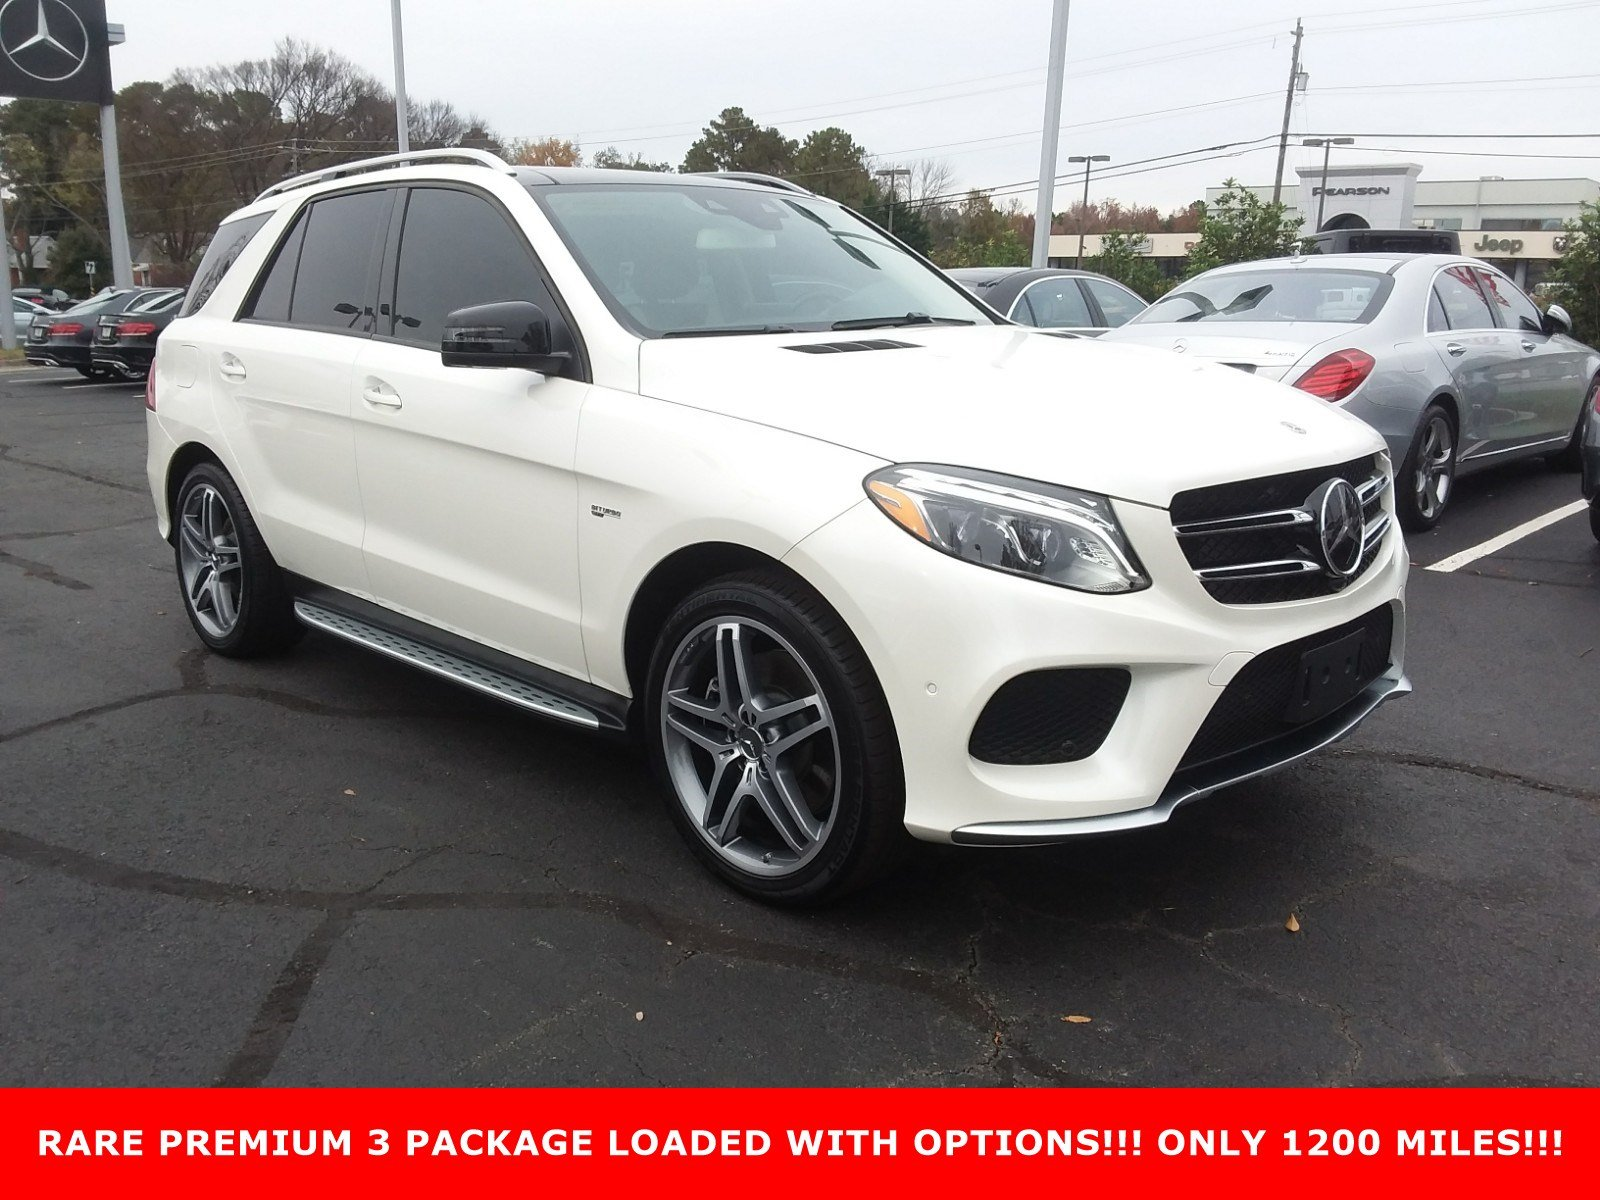 Pre Owned 2018 Mercedes Benz GLE AMG GLE 43 SUV SUV in Richmond